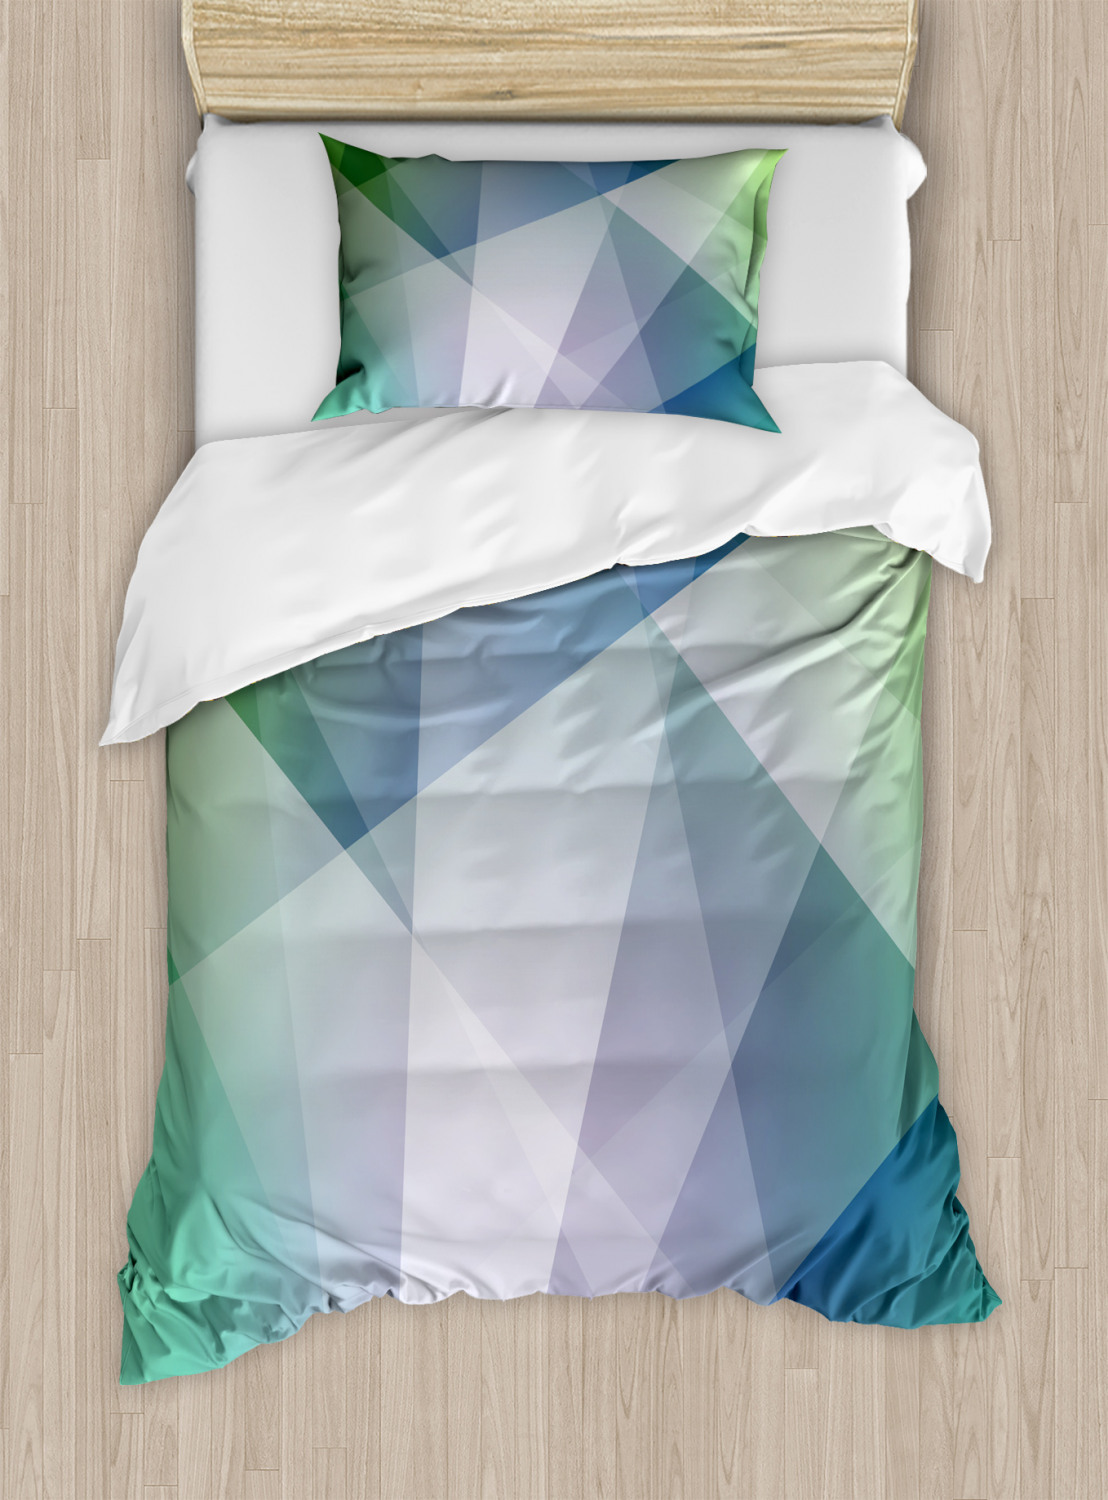 Teal-and-White-Duvet-Cover-Set-Twin-Queen-King-Sizes-with-Pillow-Shams-Ambesonne thumbnail 2